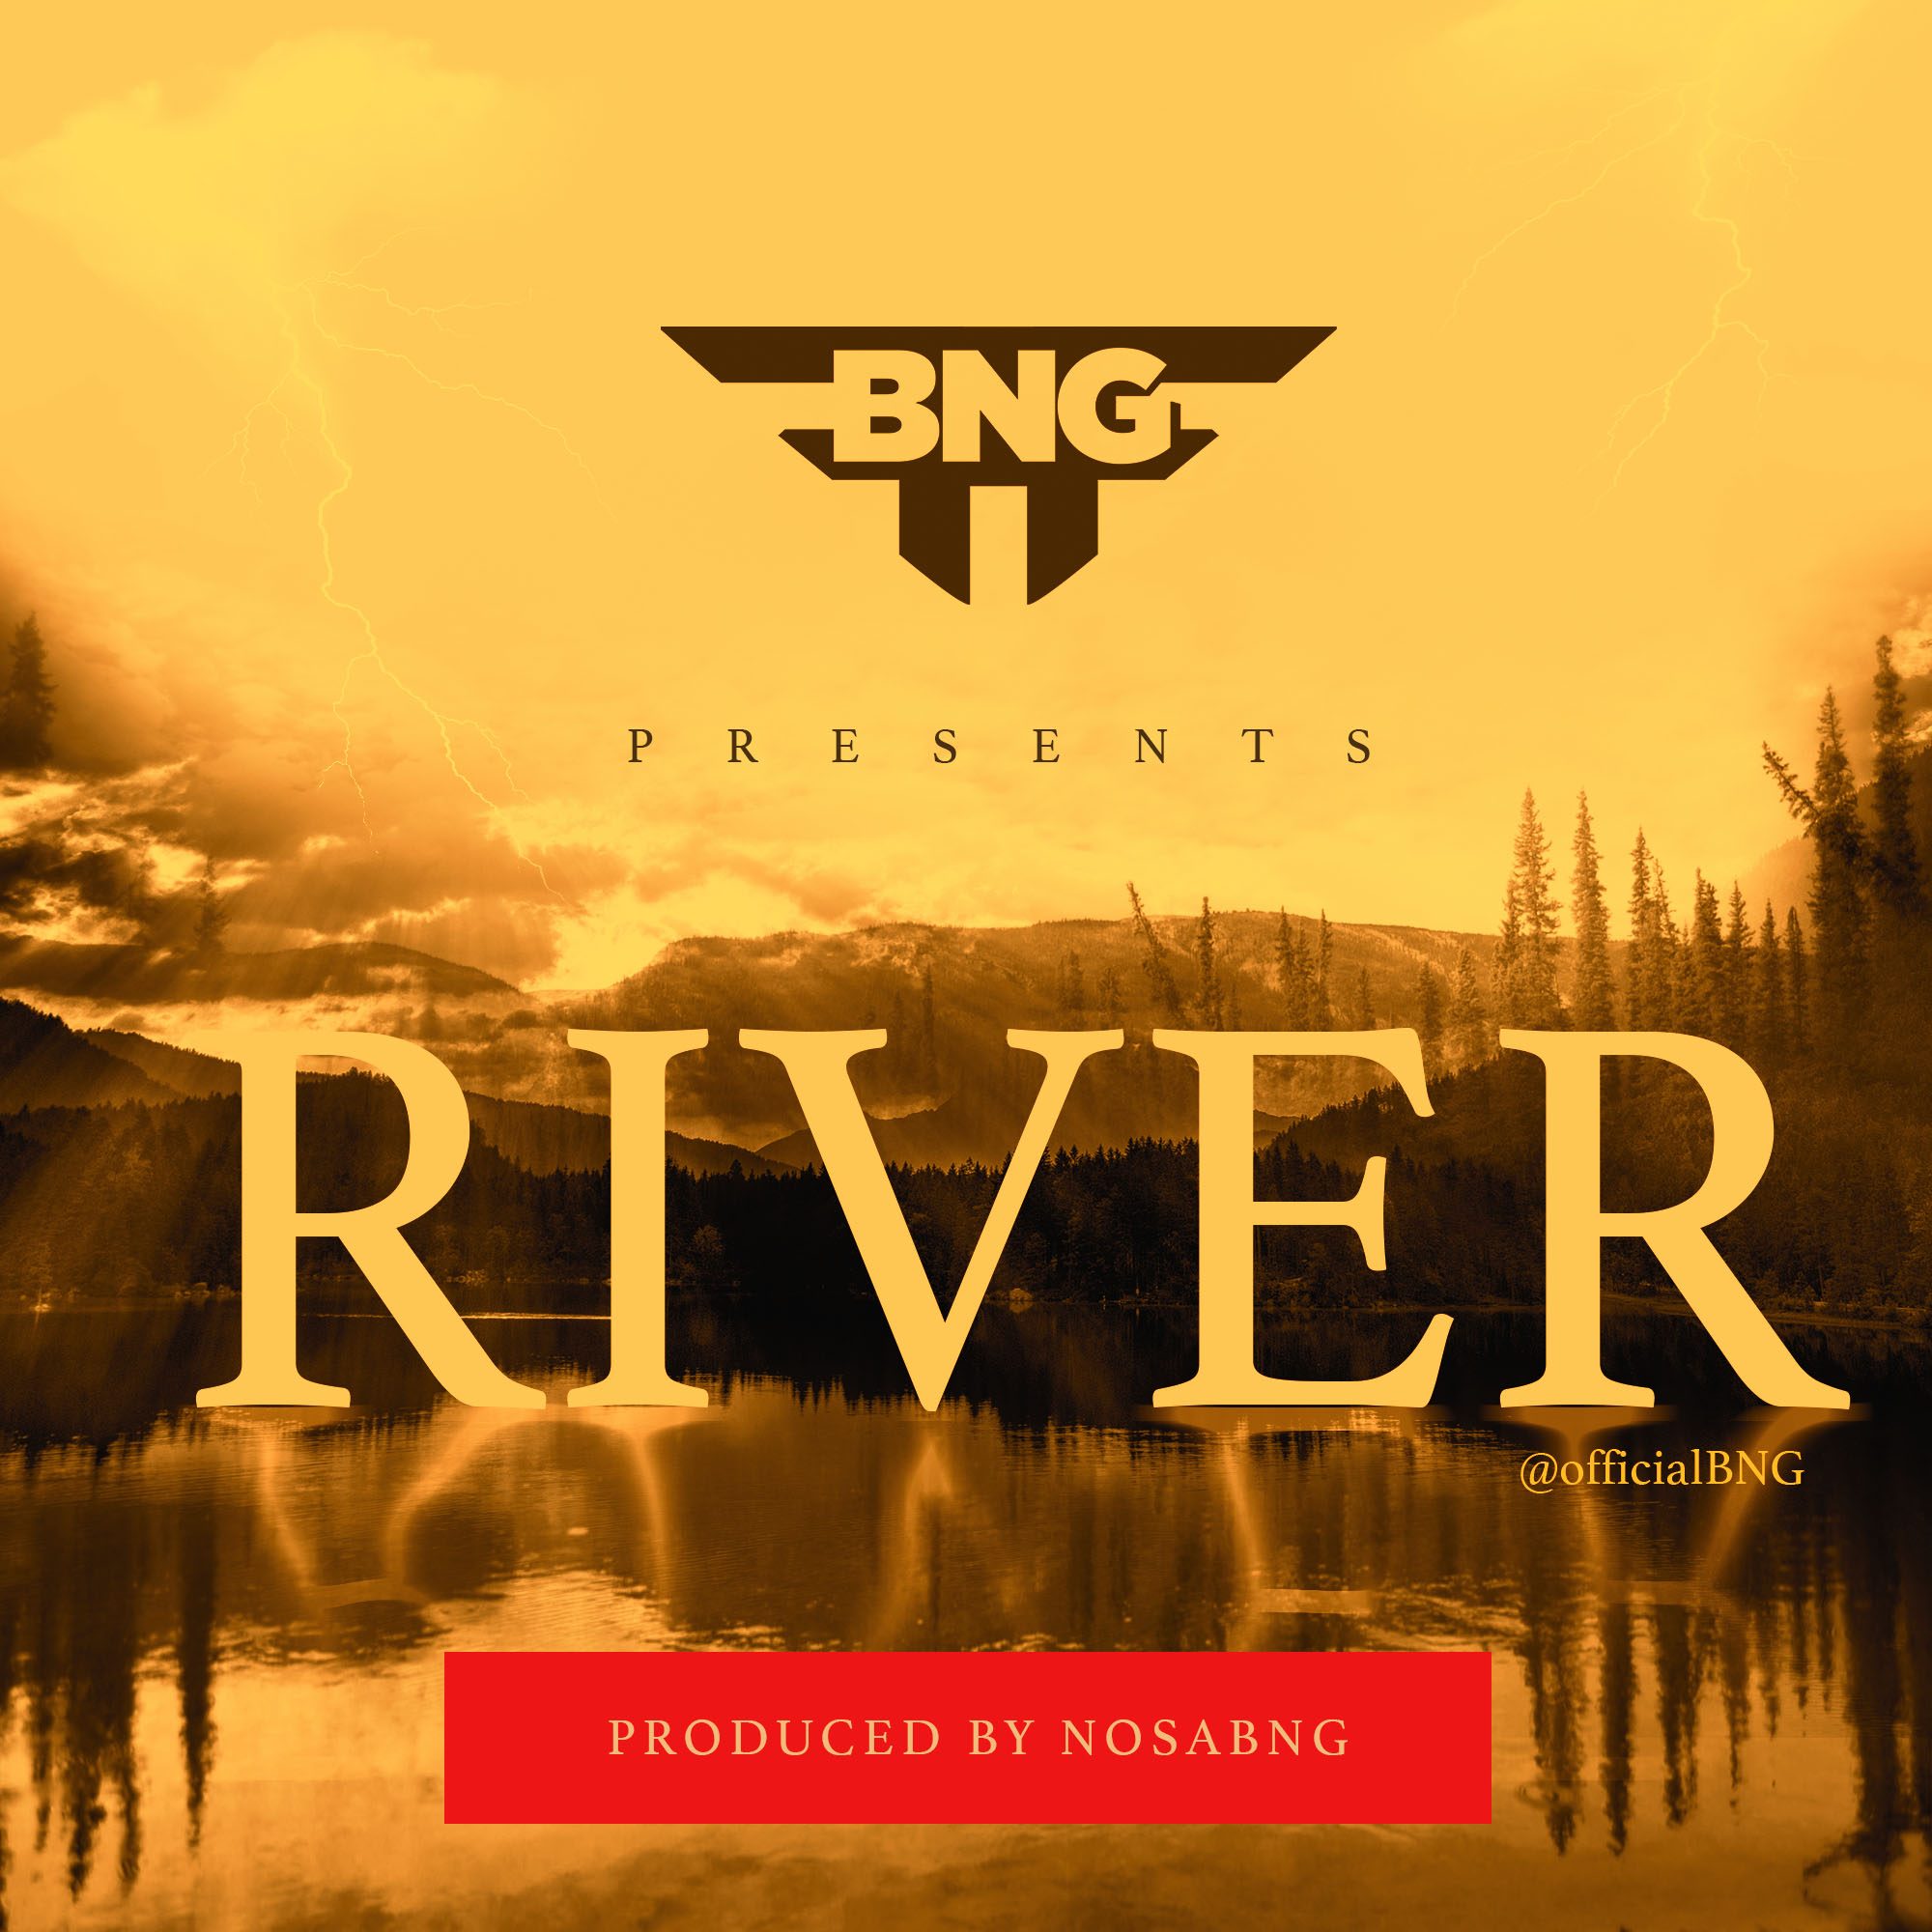 RIVER - BNG (Brand New Generation) [@OFFICIALBNG]